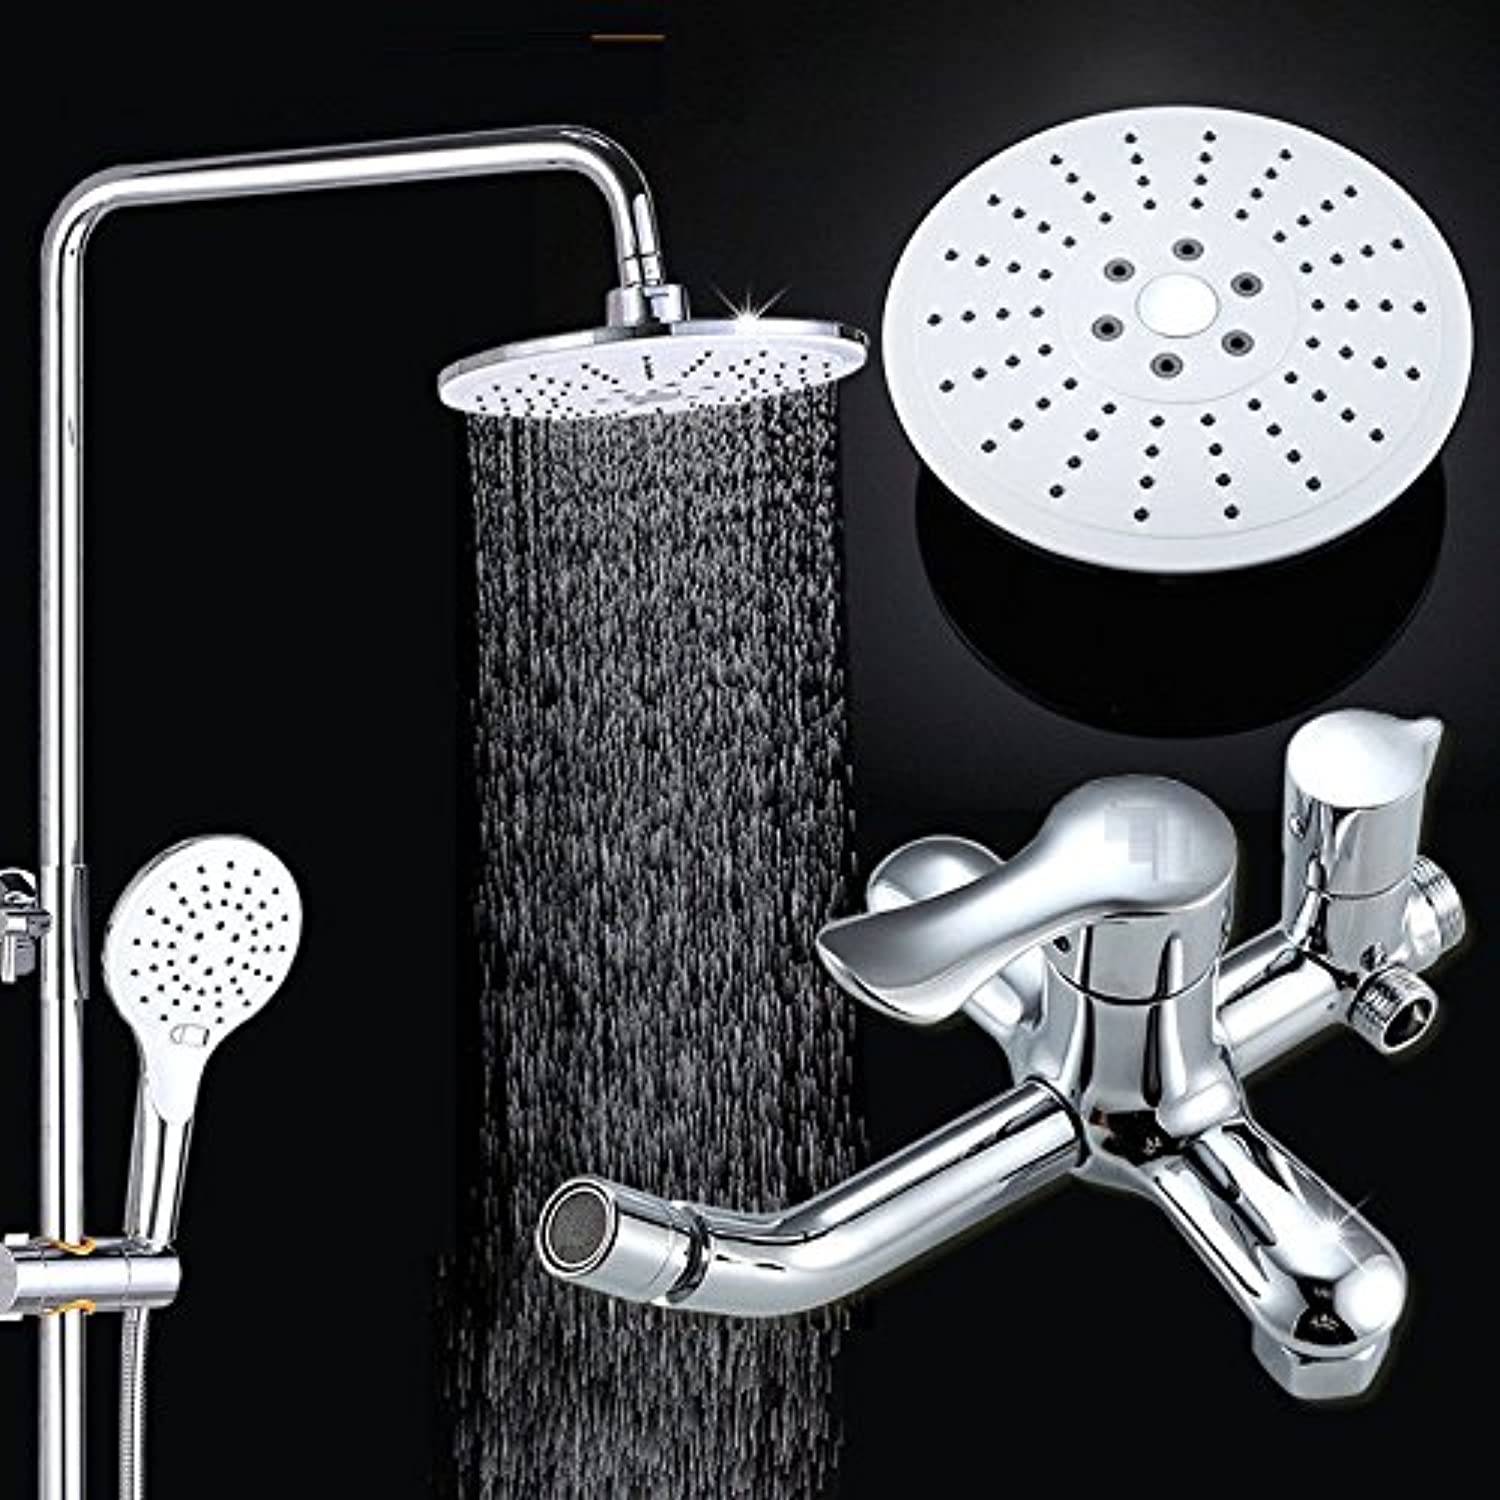 Lalaky Taps Faucet Kitchen Mixer Sink Waterfall Bathroom Mixer Basin Mixer Tap for Kitchen Bathroom and Washroom Adjustable Lifting Rod Large Copper Can Be Adjusted